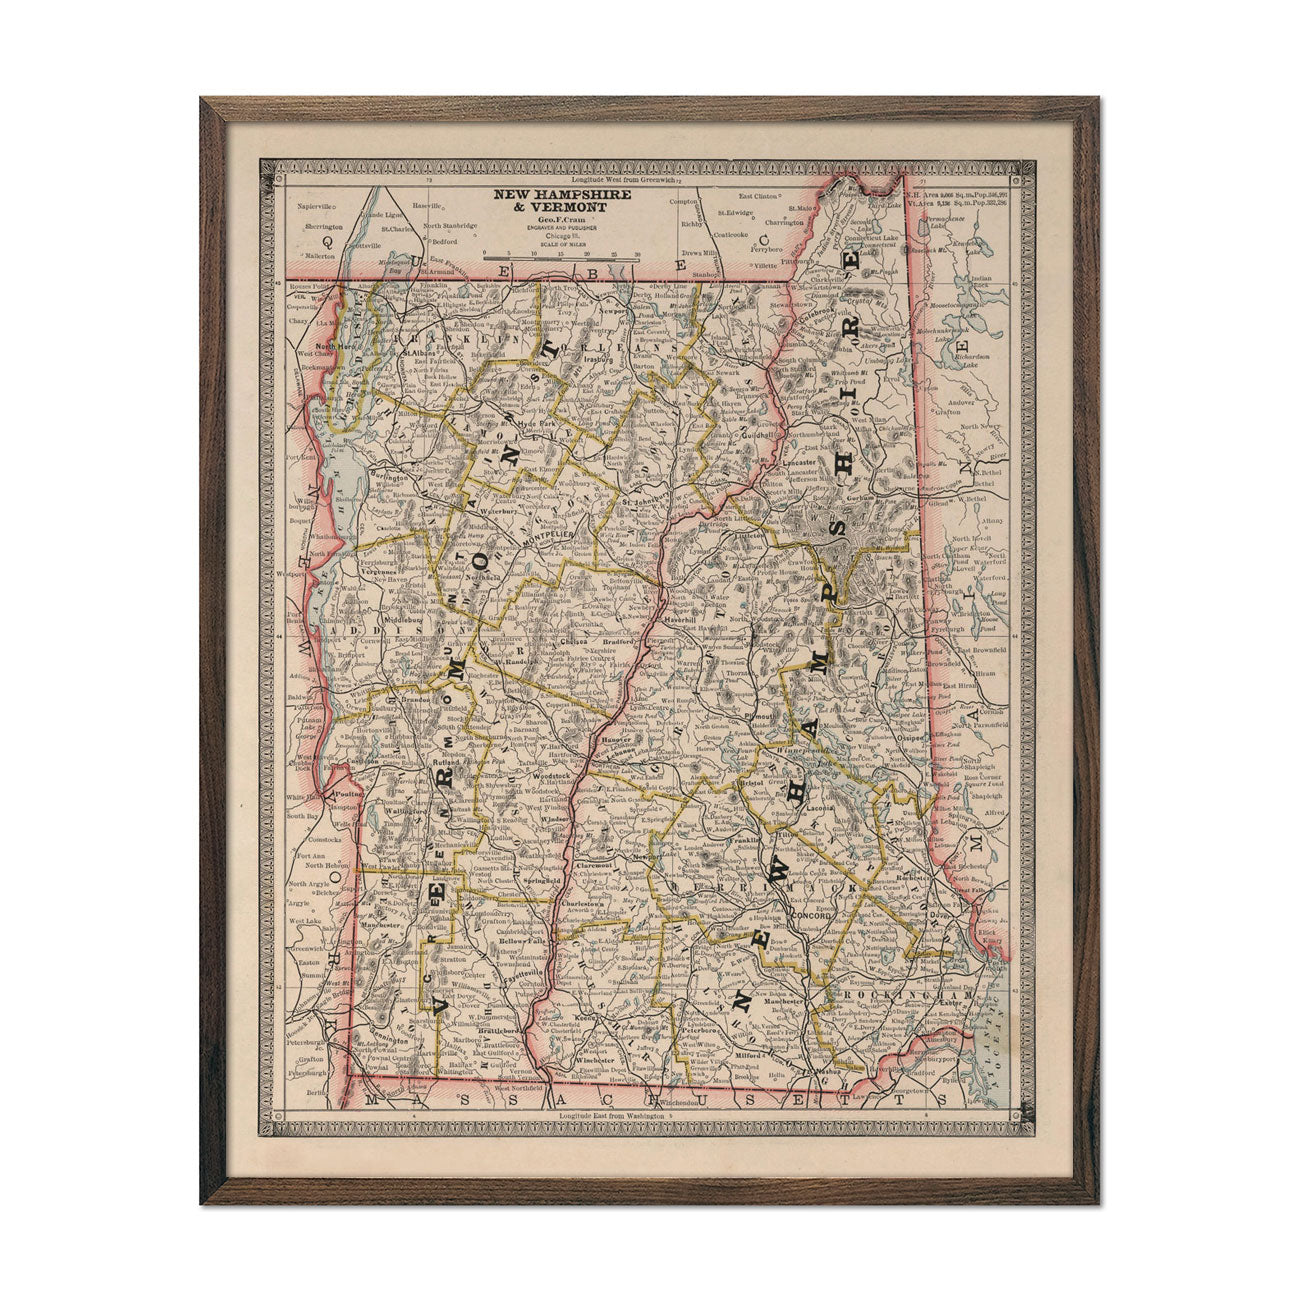 Vintage Map of New Hampshire and Vermont 1883